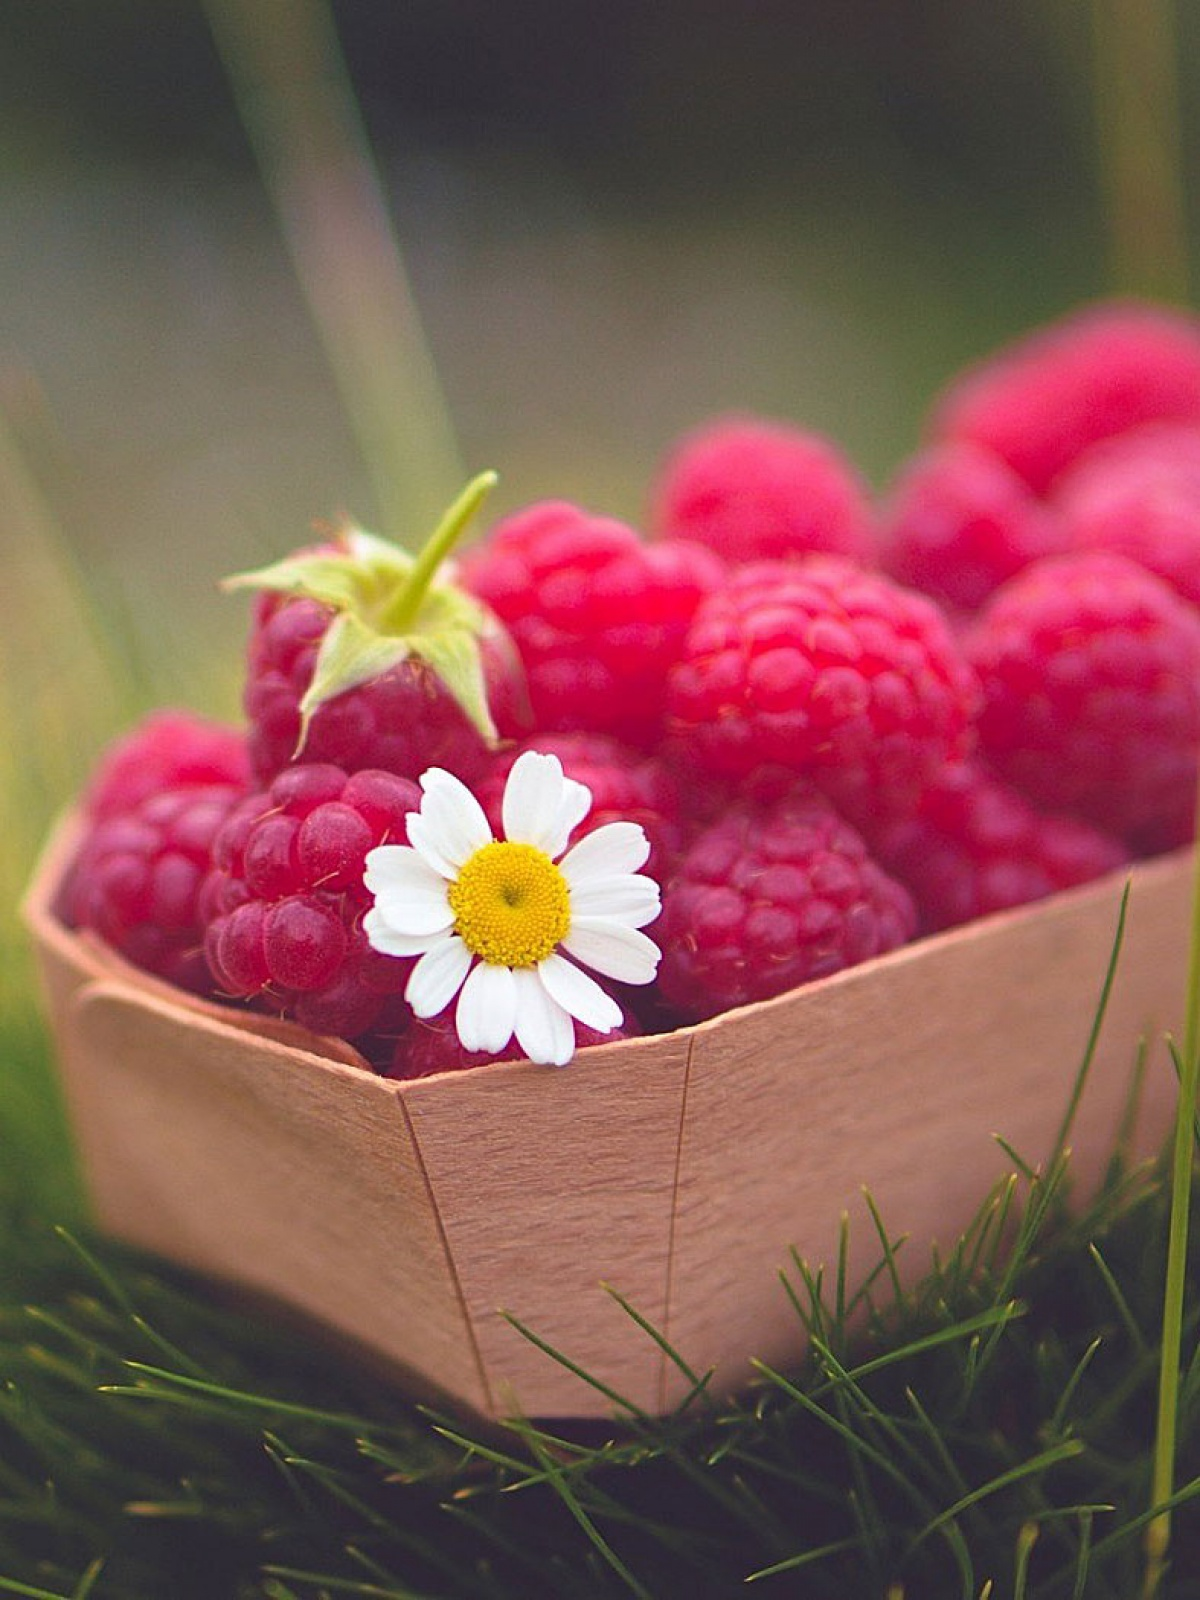 food raspberries berry daisy mobile wallpaper - mobiles wall